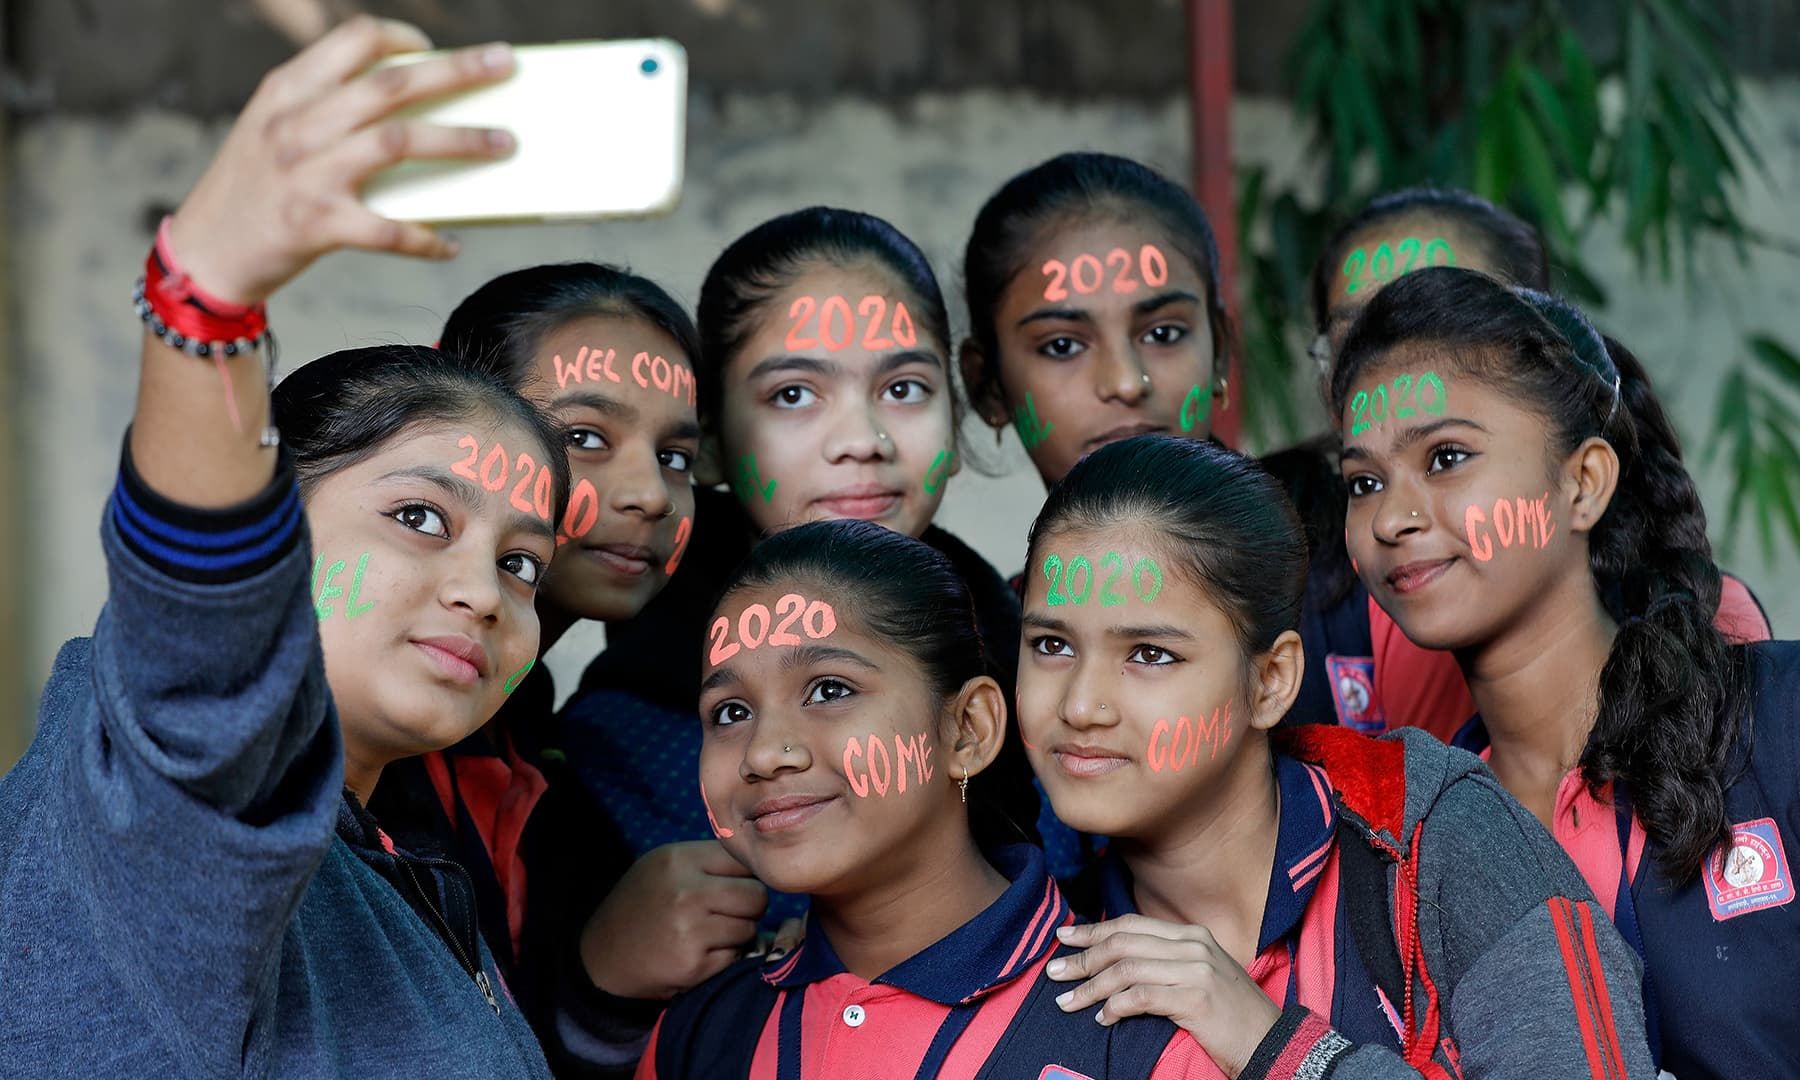 Girls with their faces painted in the digits of number 2020, pose for a selfie during celebrations to welcome the New Year at a school in Ahmedabad, India, on Tuesday. — Reuters